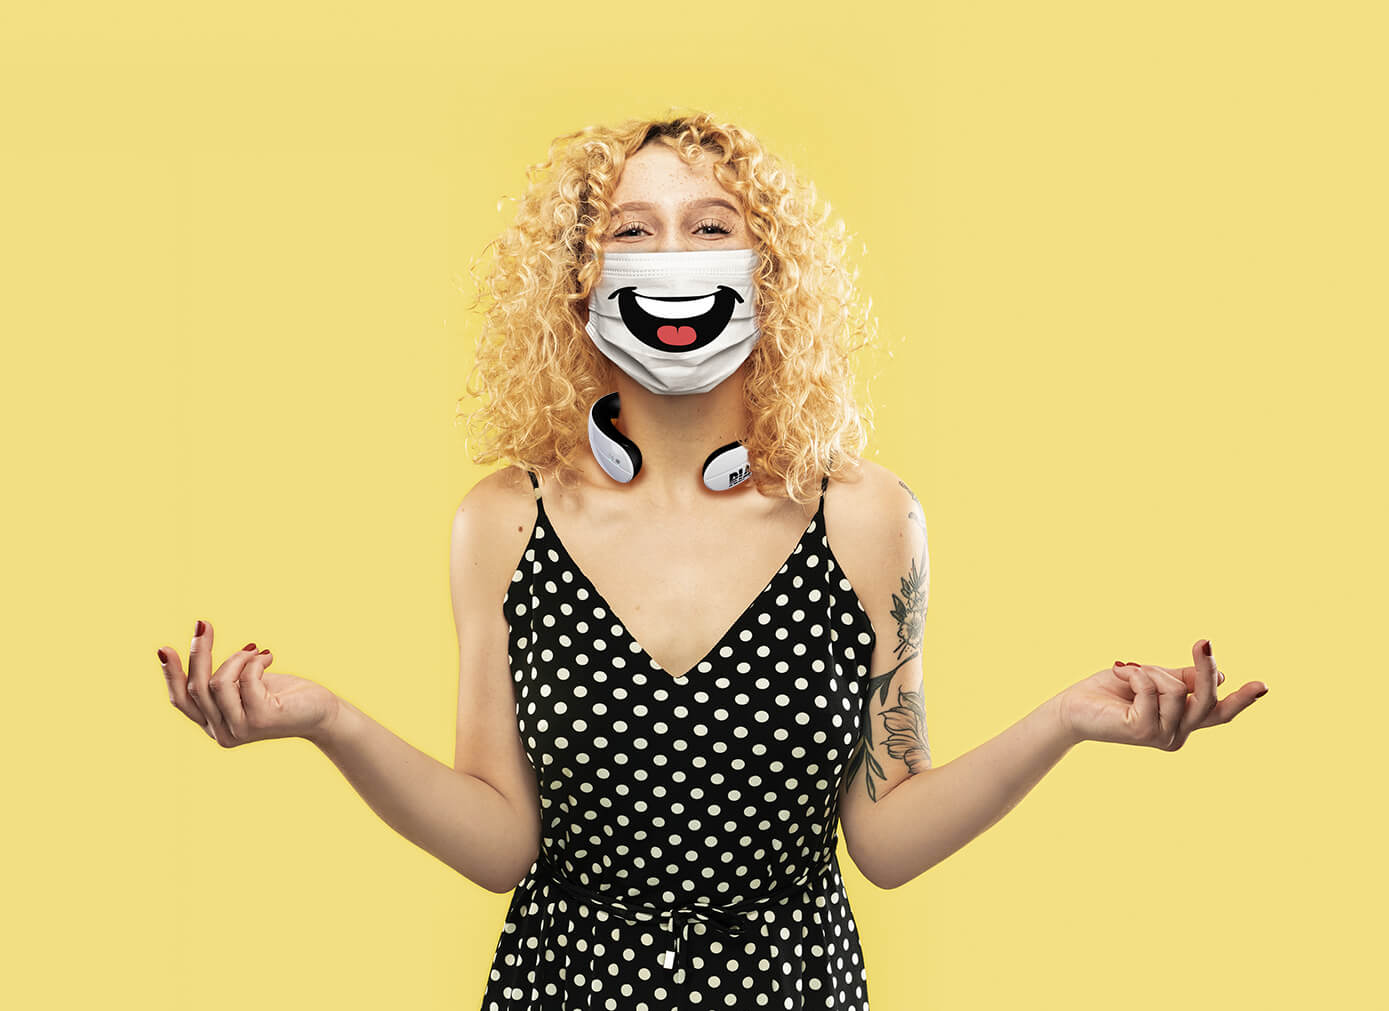 Young blonde woman wearing RIA and a face mask with a smile illustrated on